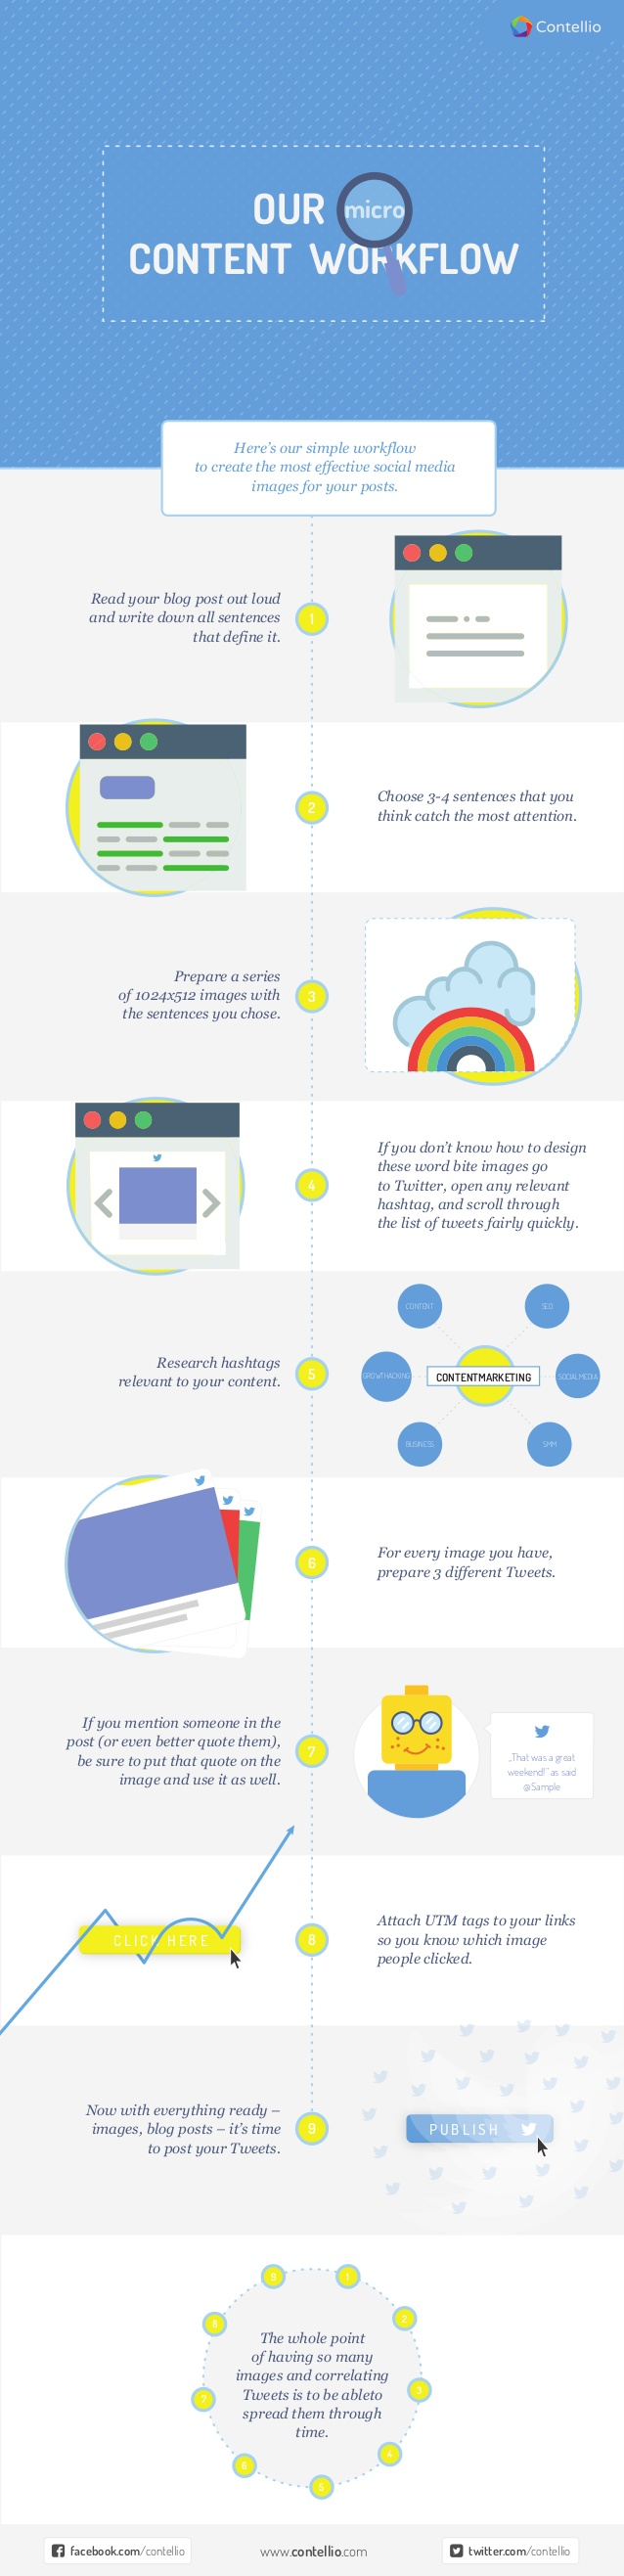 1 2 3 4 5 6 7 8 9 CONTENT WORKFLOW OUR micro Here's our simple workflow to create the most effective social media images f...